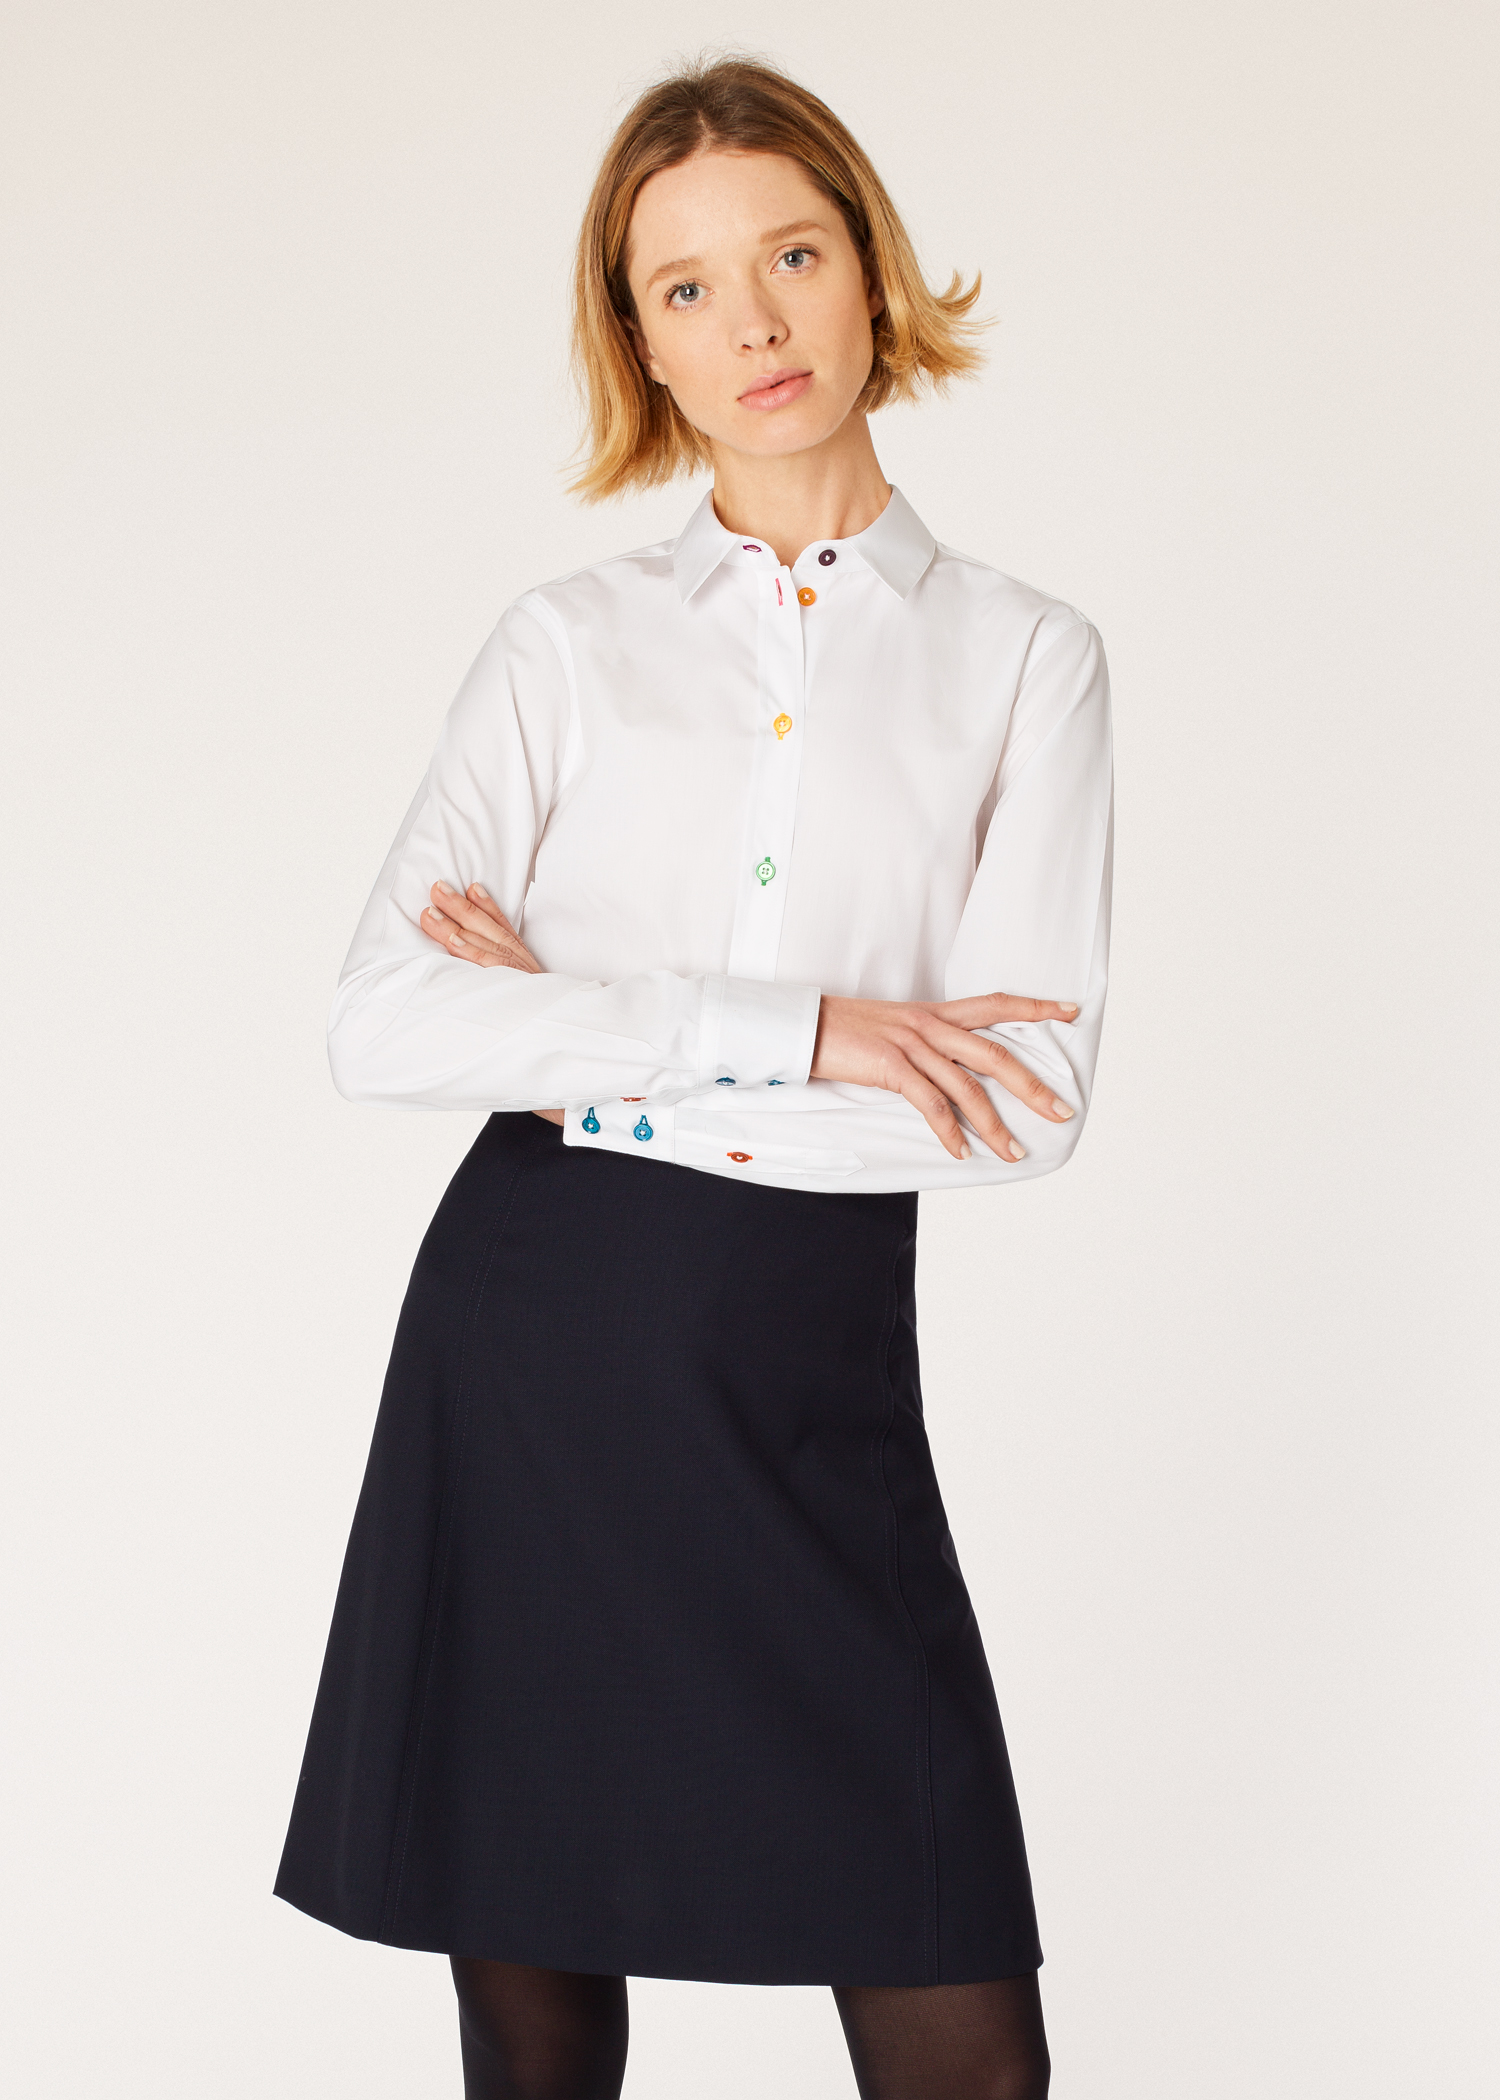 Women s Slim-Fit White Cotton Shirt With  Swirl  Cuff Lining - Paul ... 4c32f7fe7e